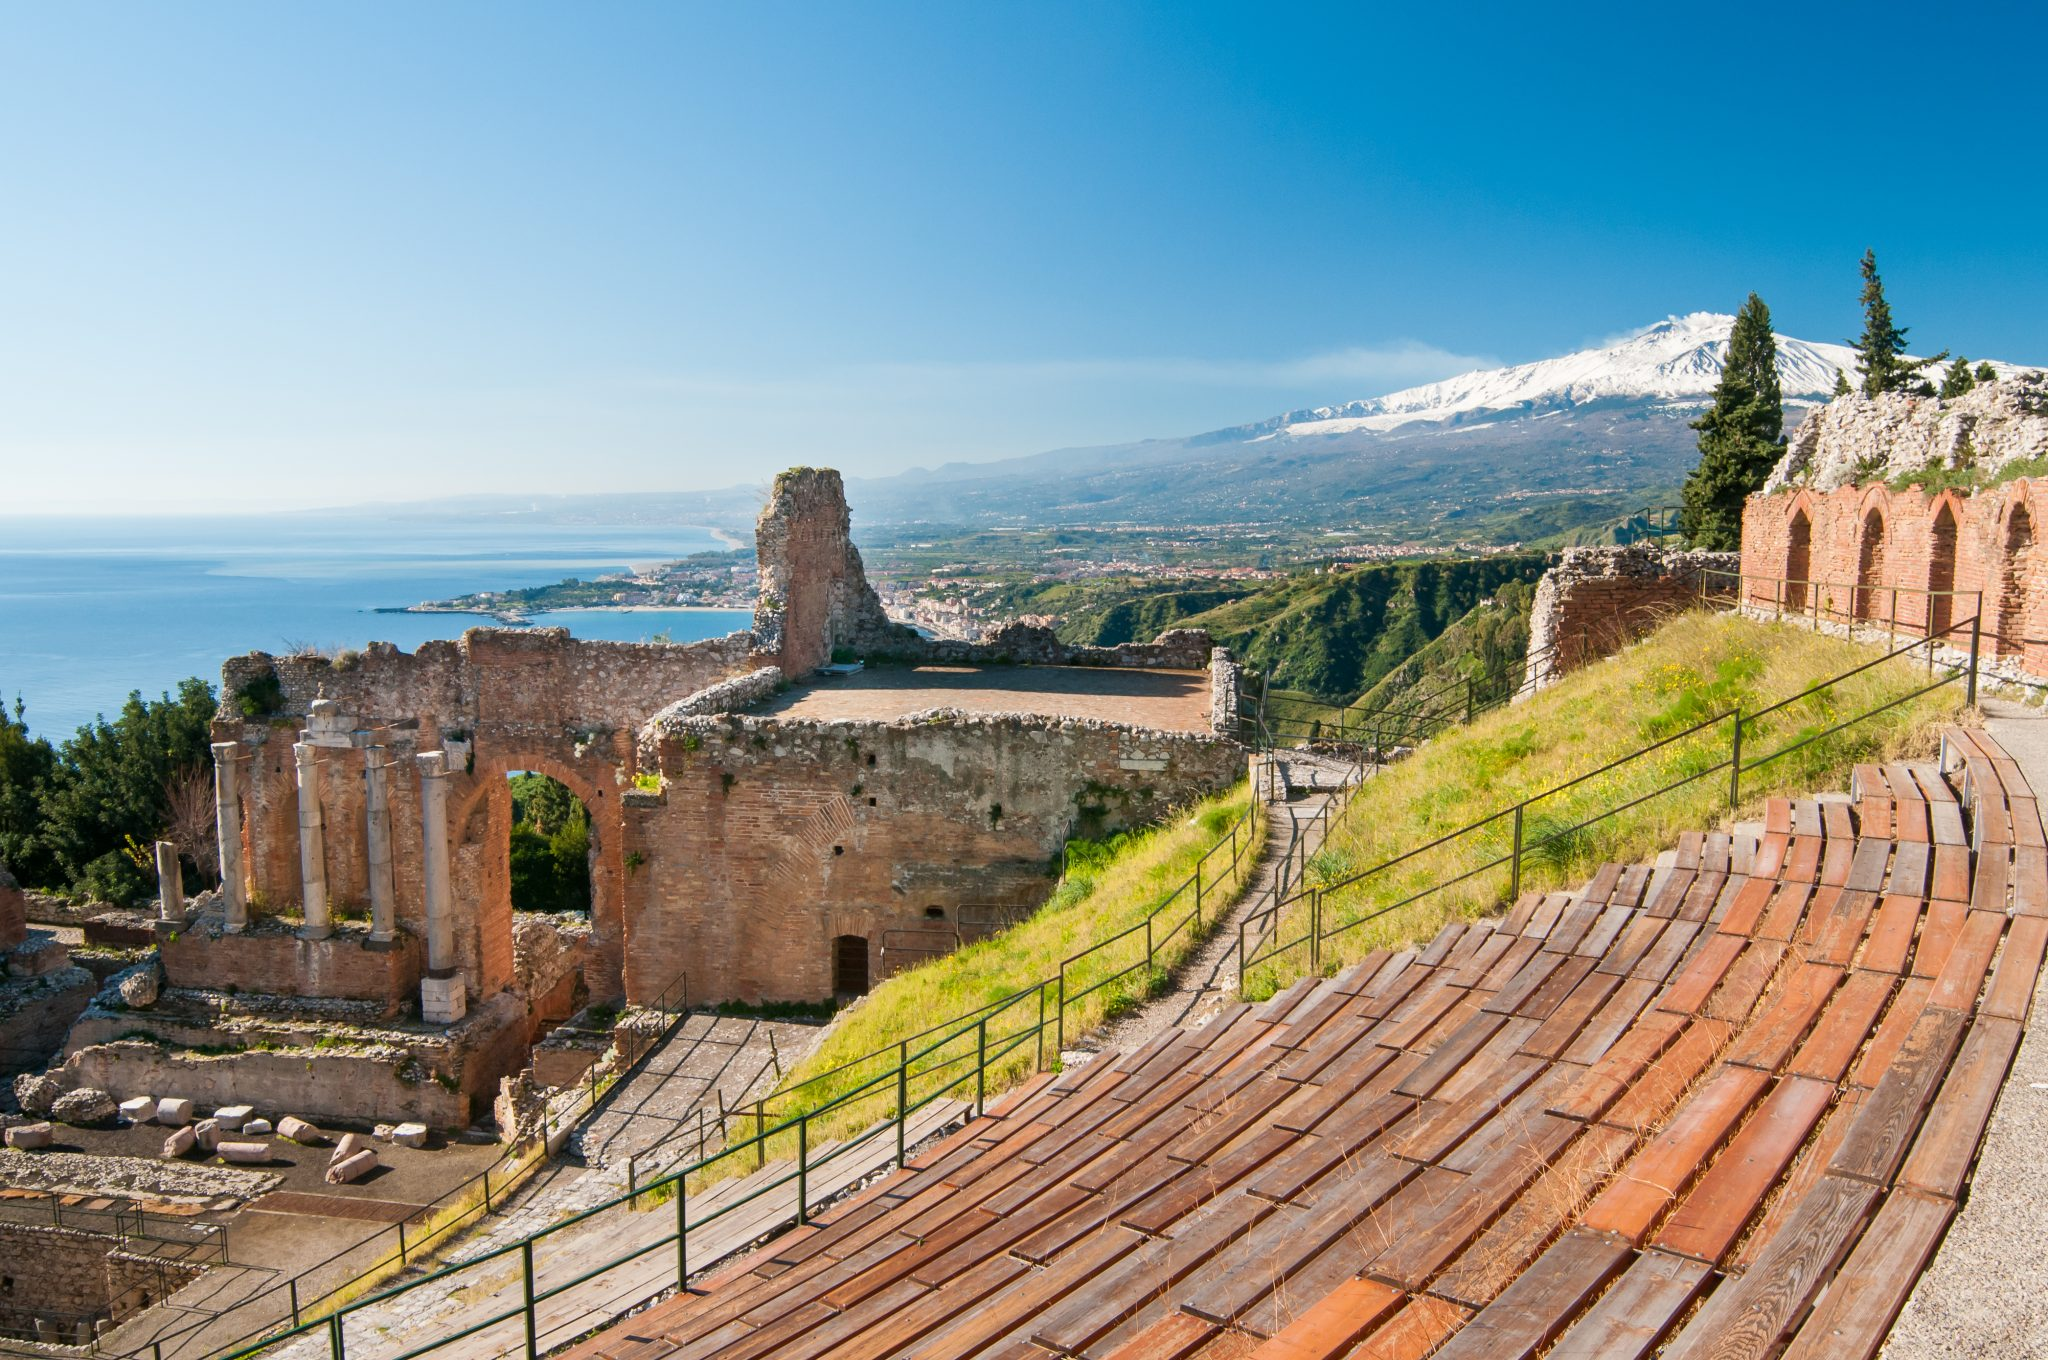 Greek/Roman Theater in Taormina